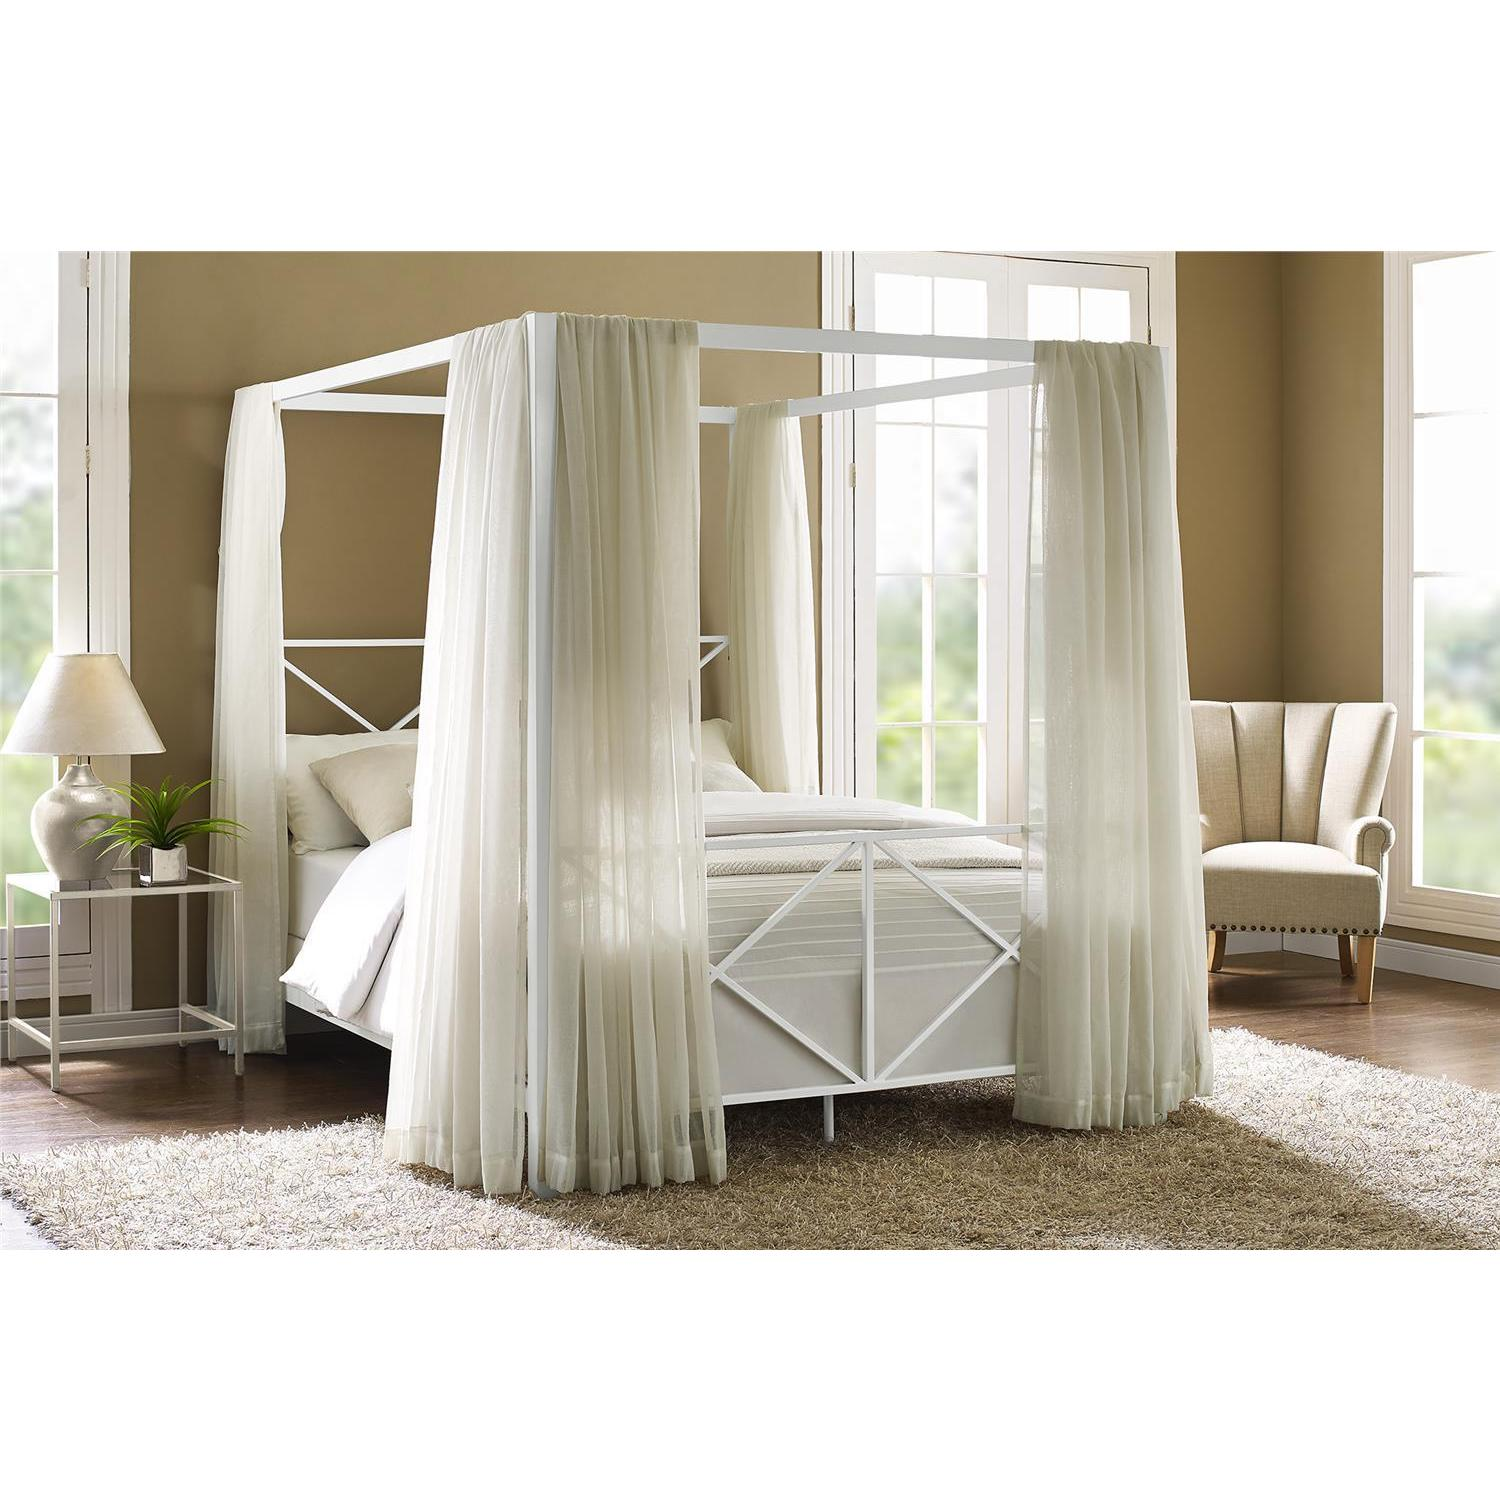 Superbe Shop DHP Rosedale White Metal Canopy Queen Bed   Free Shipping Today    Overstock.com   20255017